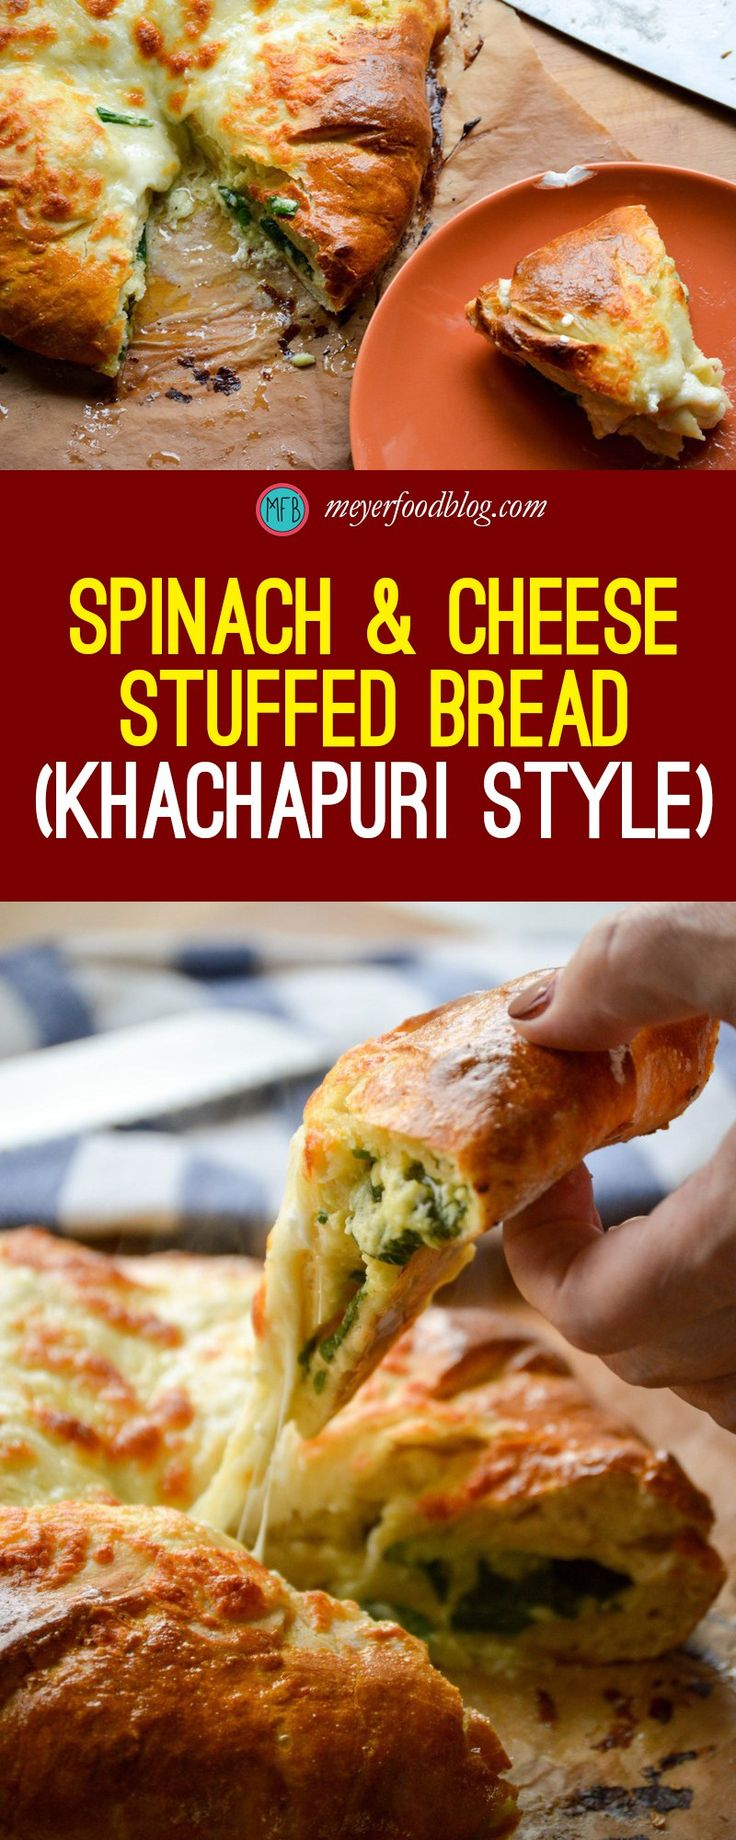 Try our delicious Spinach & Cheese Stuffed Bread - Khachapuri Style